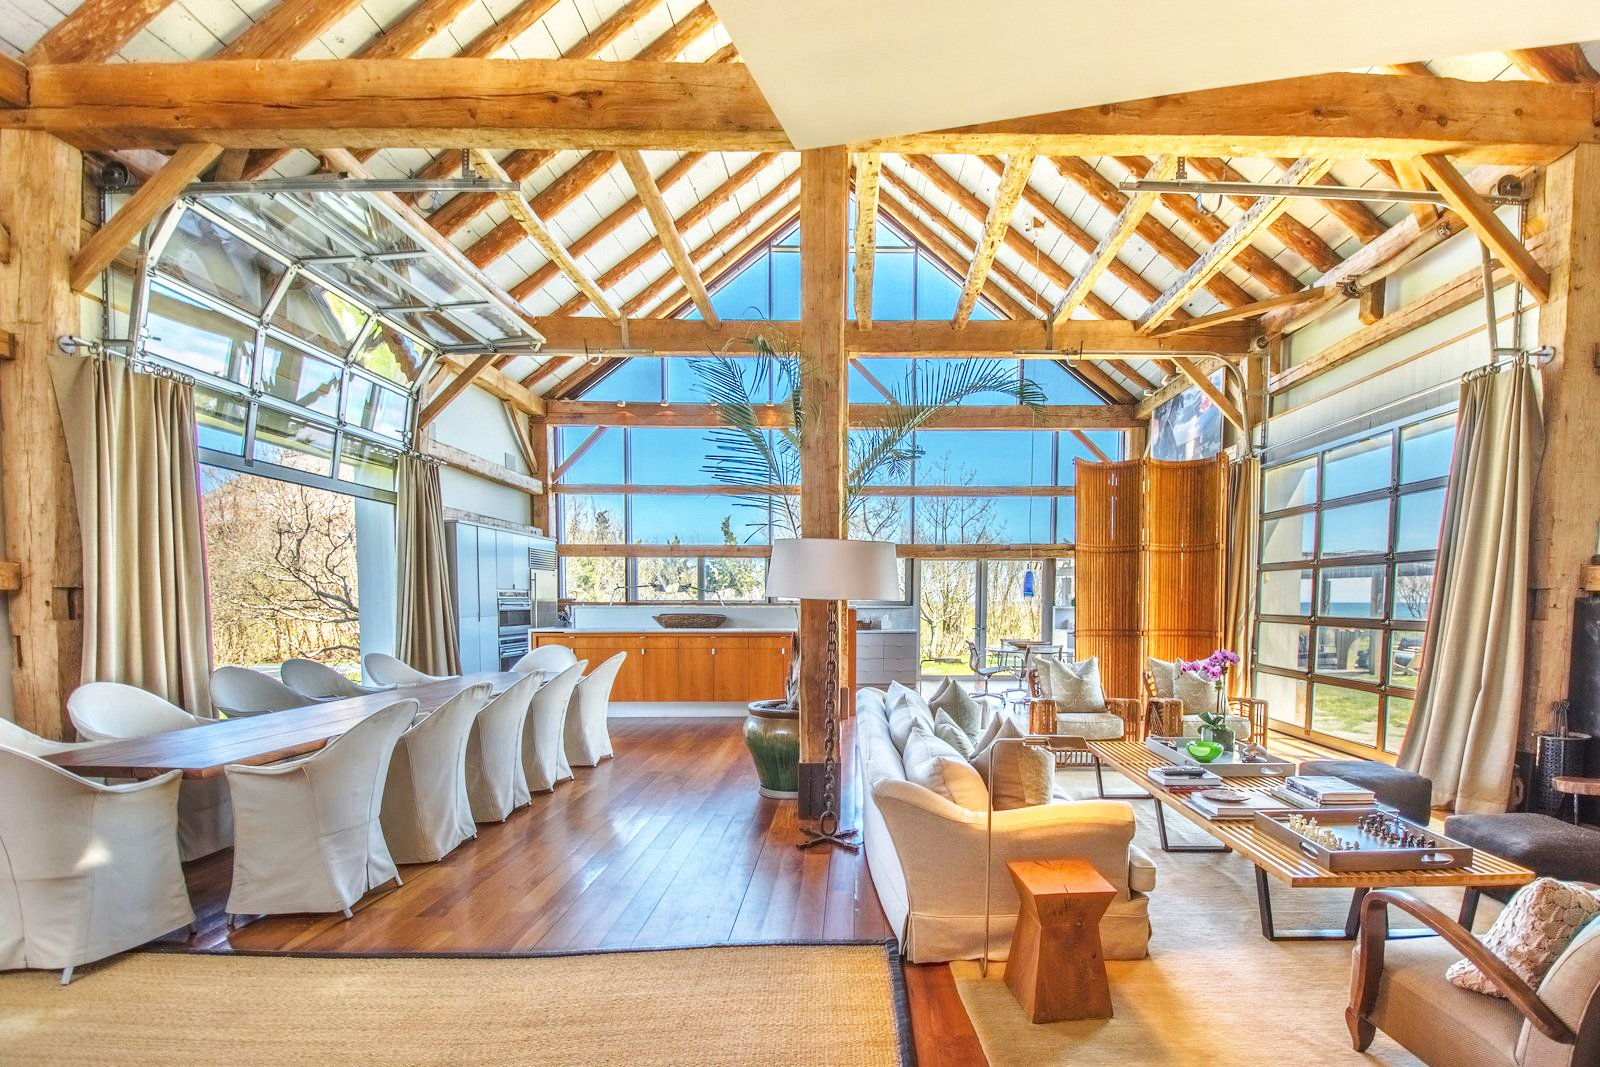 Photo 1 of 10 in Fashion Designer Elie Tahari Drops the Asking Price of His Hamptons Home to $39M